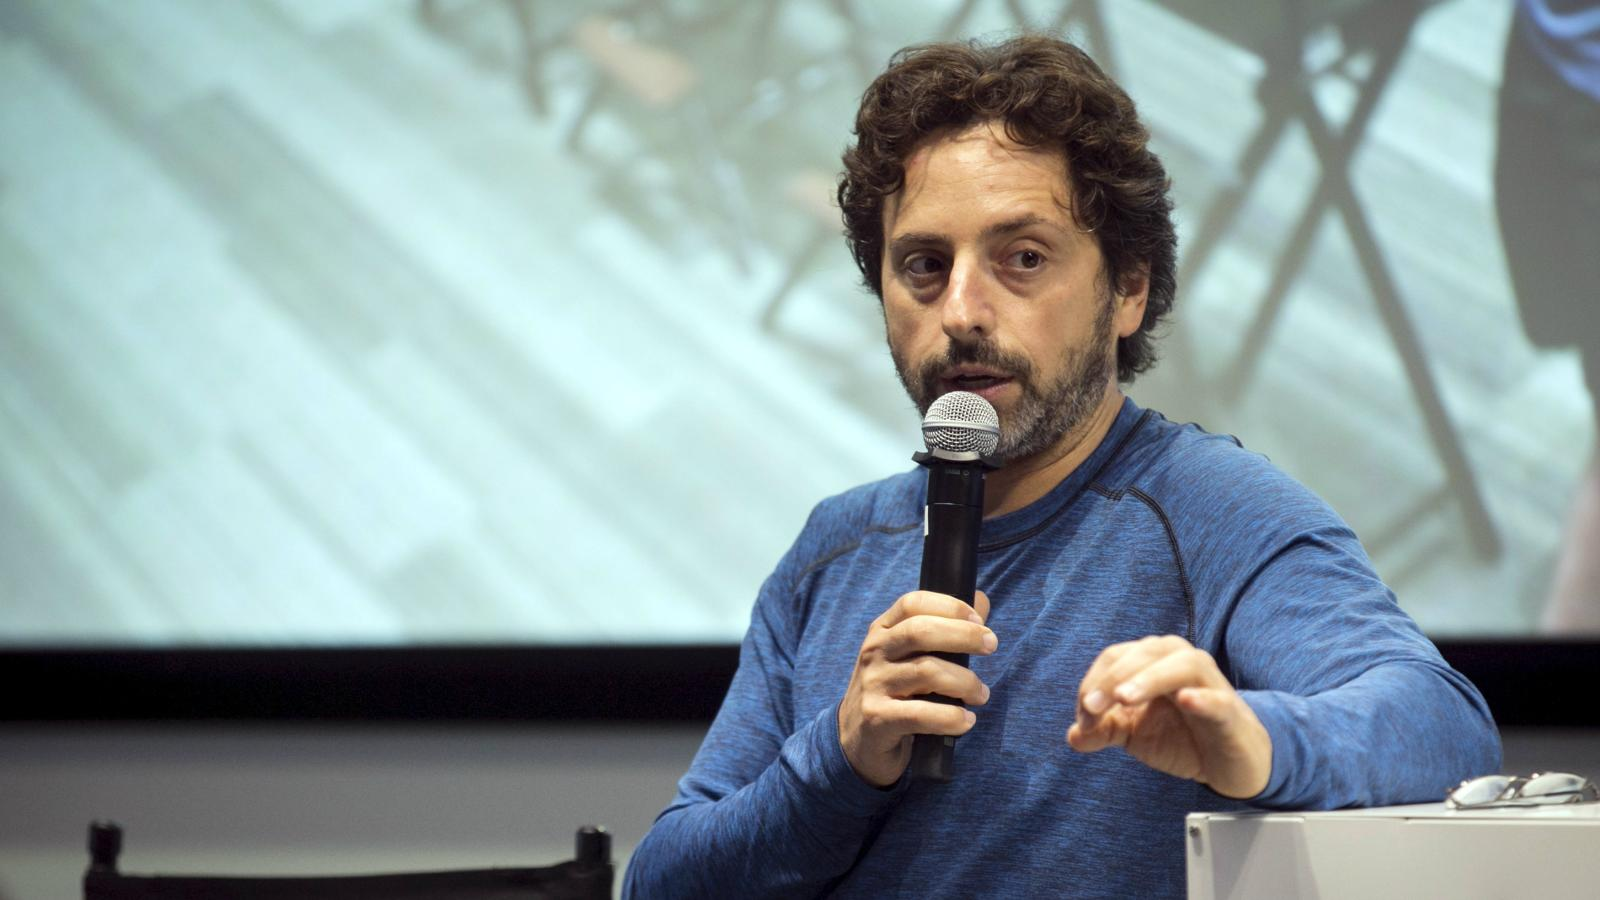 Without Sergey Brin, Google has lost its fear of authoritarian ...